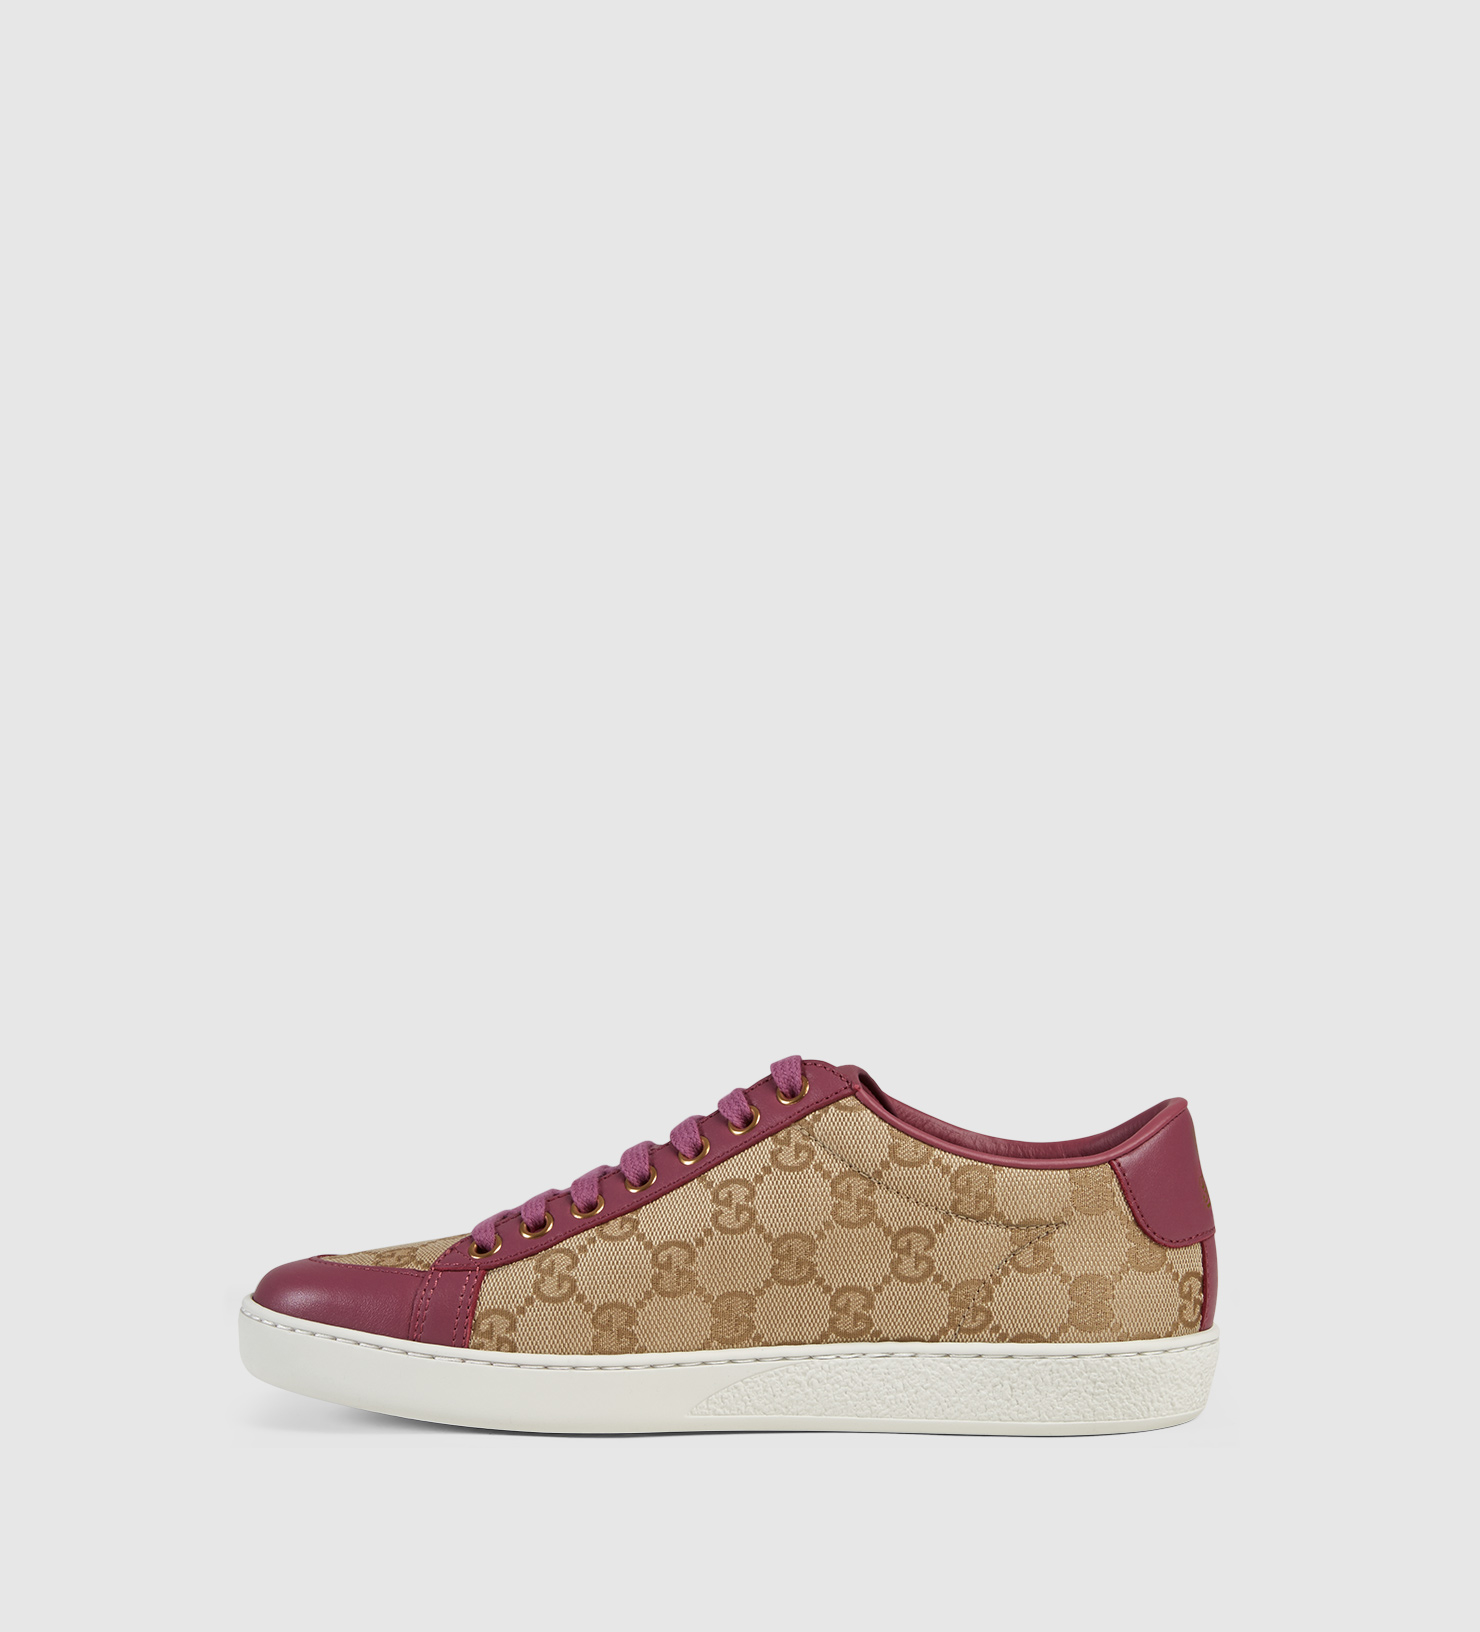 c5a50a8bd50 Gucci Brooklyn Original Gg Canvas Lace-up Sneaker in Natural - Lyst